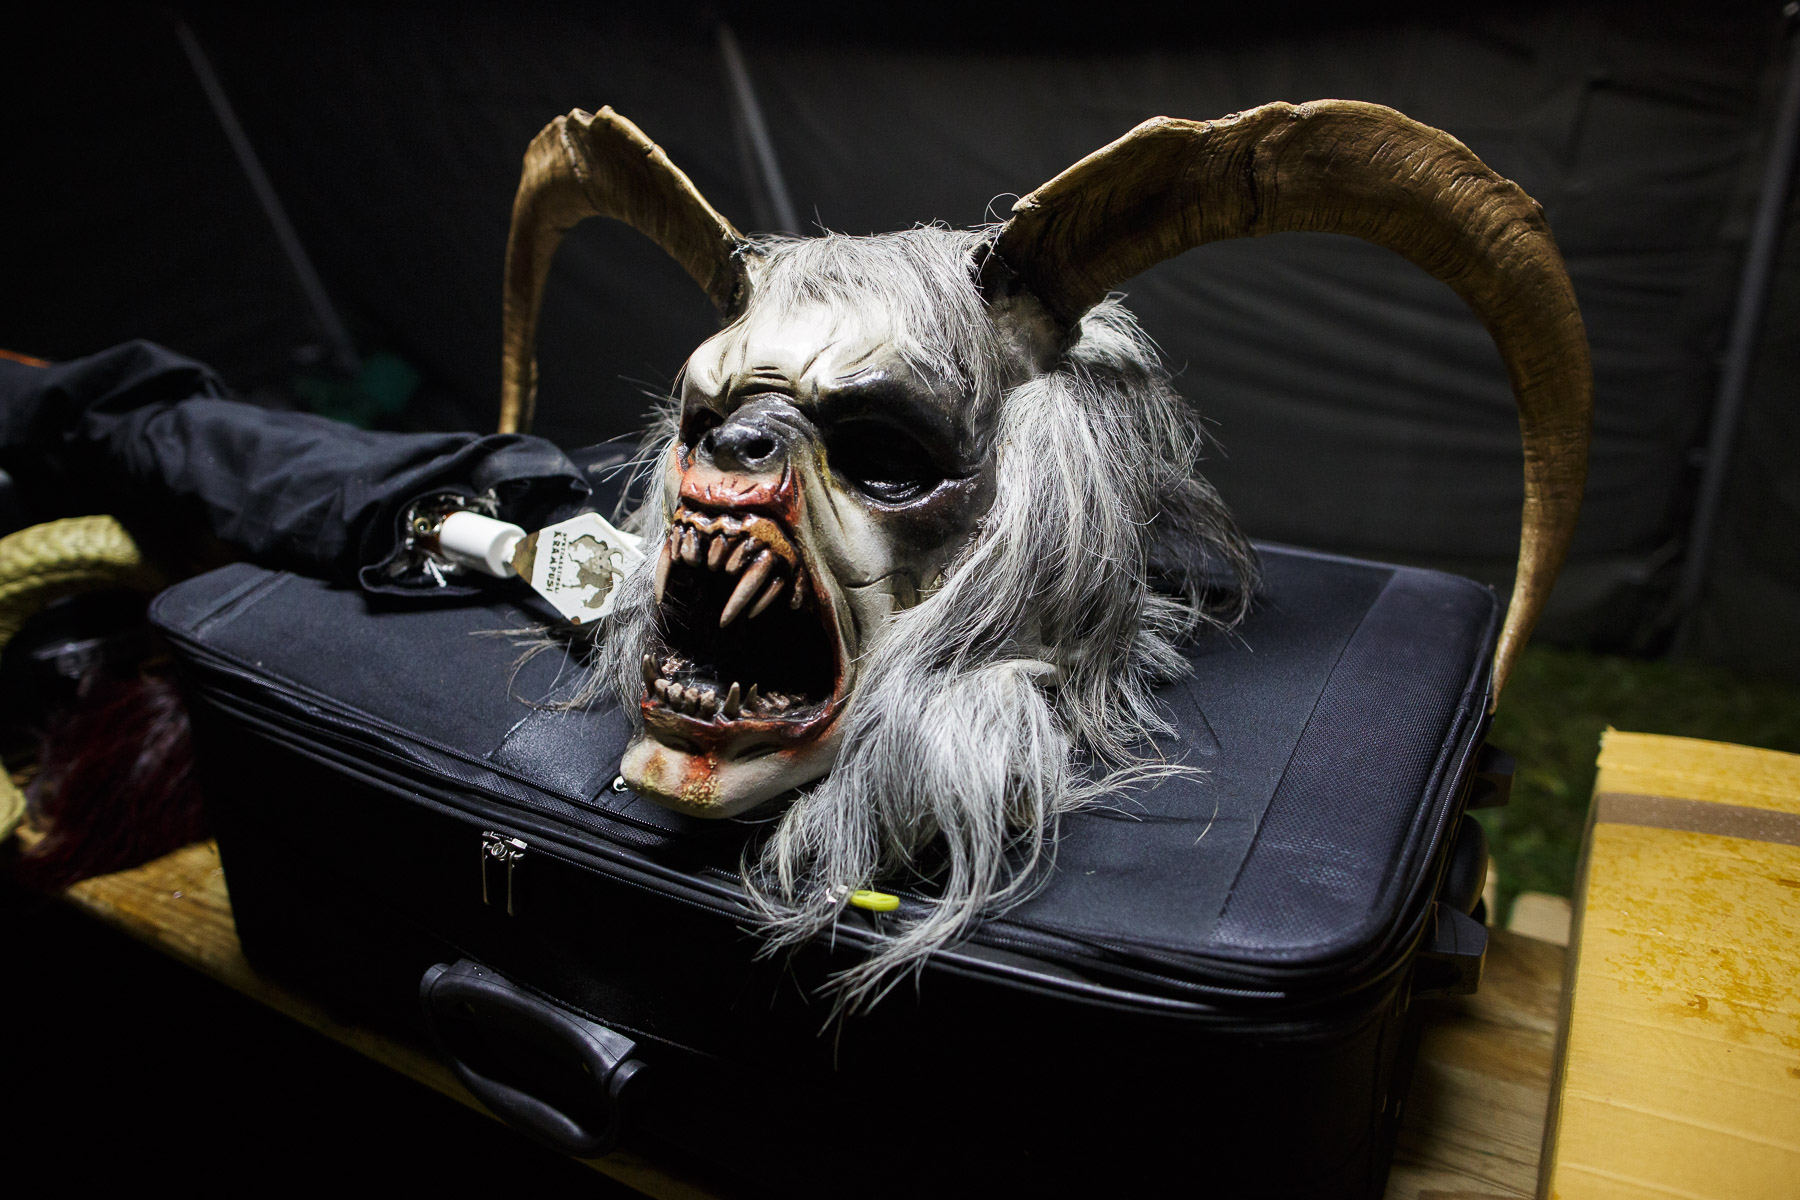 A hand-carved wooden Krampus mask rests in the dressing tent before the Krampus gathering in Goricane, Slovenia, Nov. 21, 2015. In Central European alpine folklore, Krampus is a demonic creature traditionally following St. Nicholas and angels on the evening of December 5. It pries on children who were not good during the year.